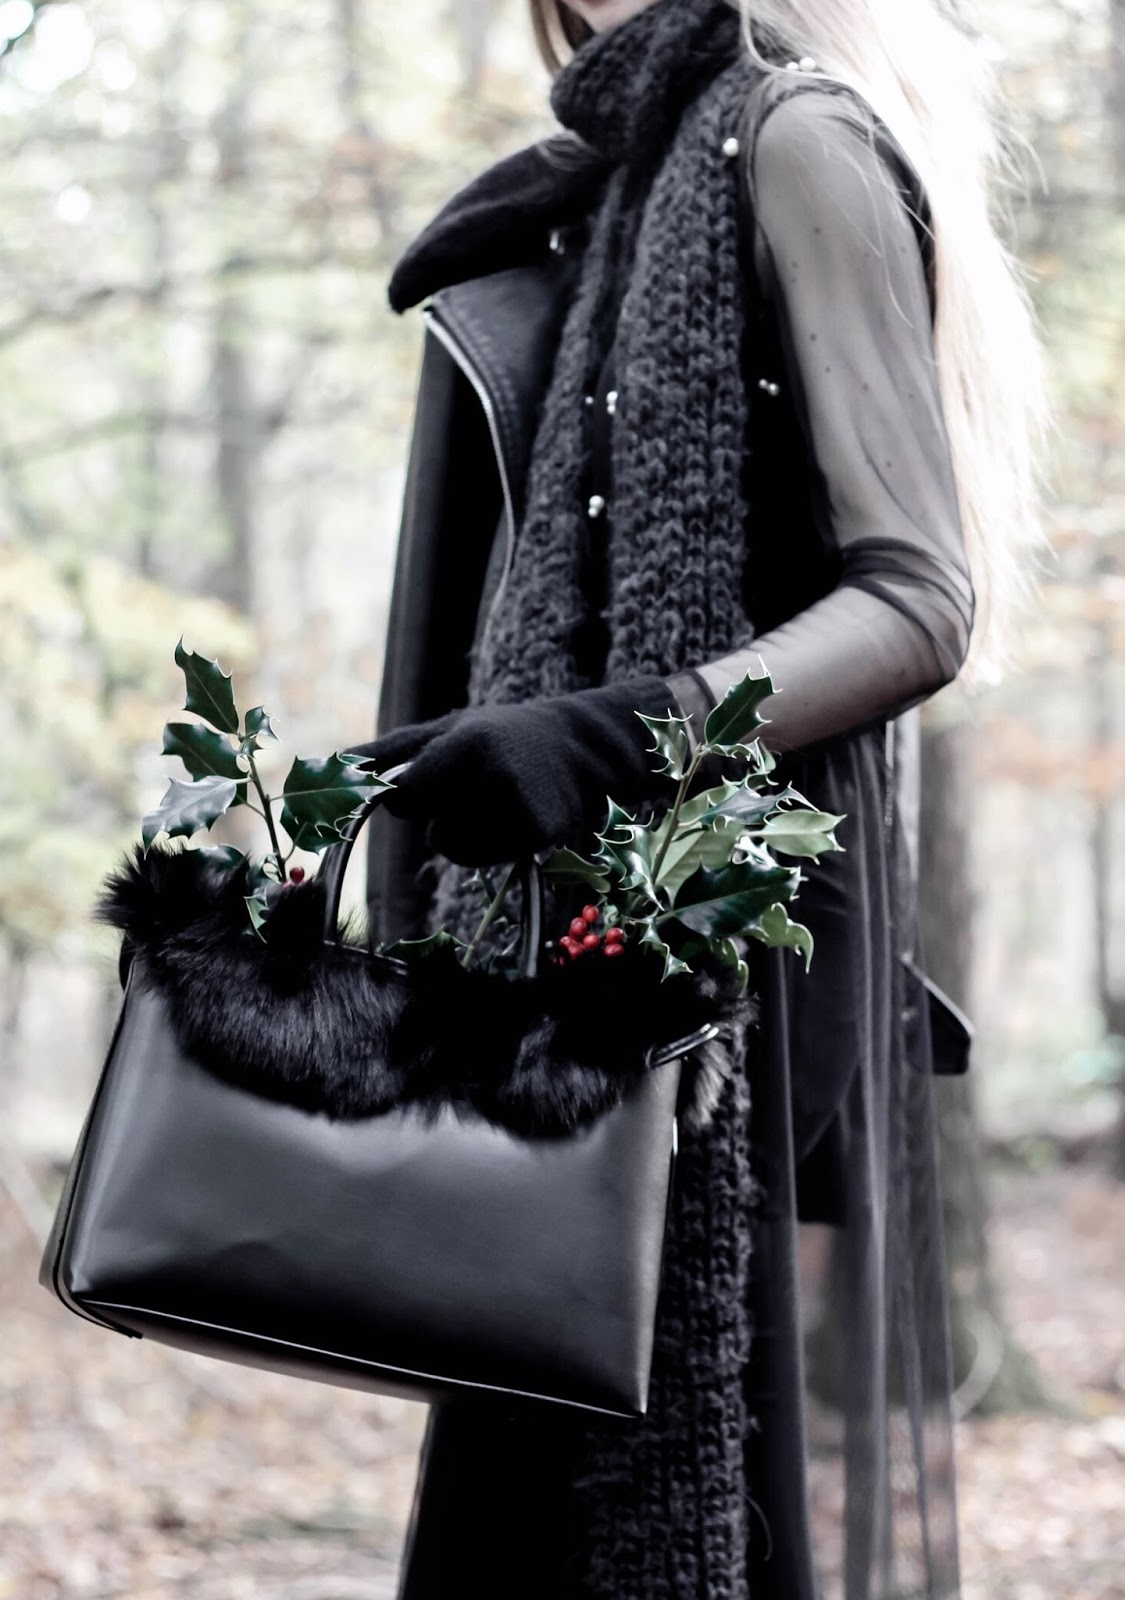 Holly Leaves Berries Flowers in Bag Fashion Blogger